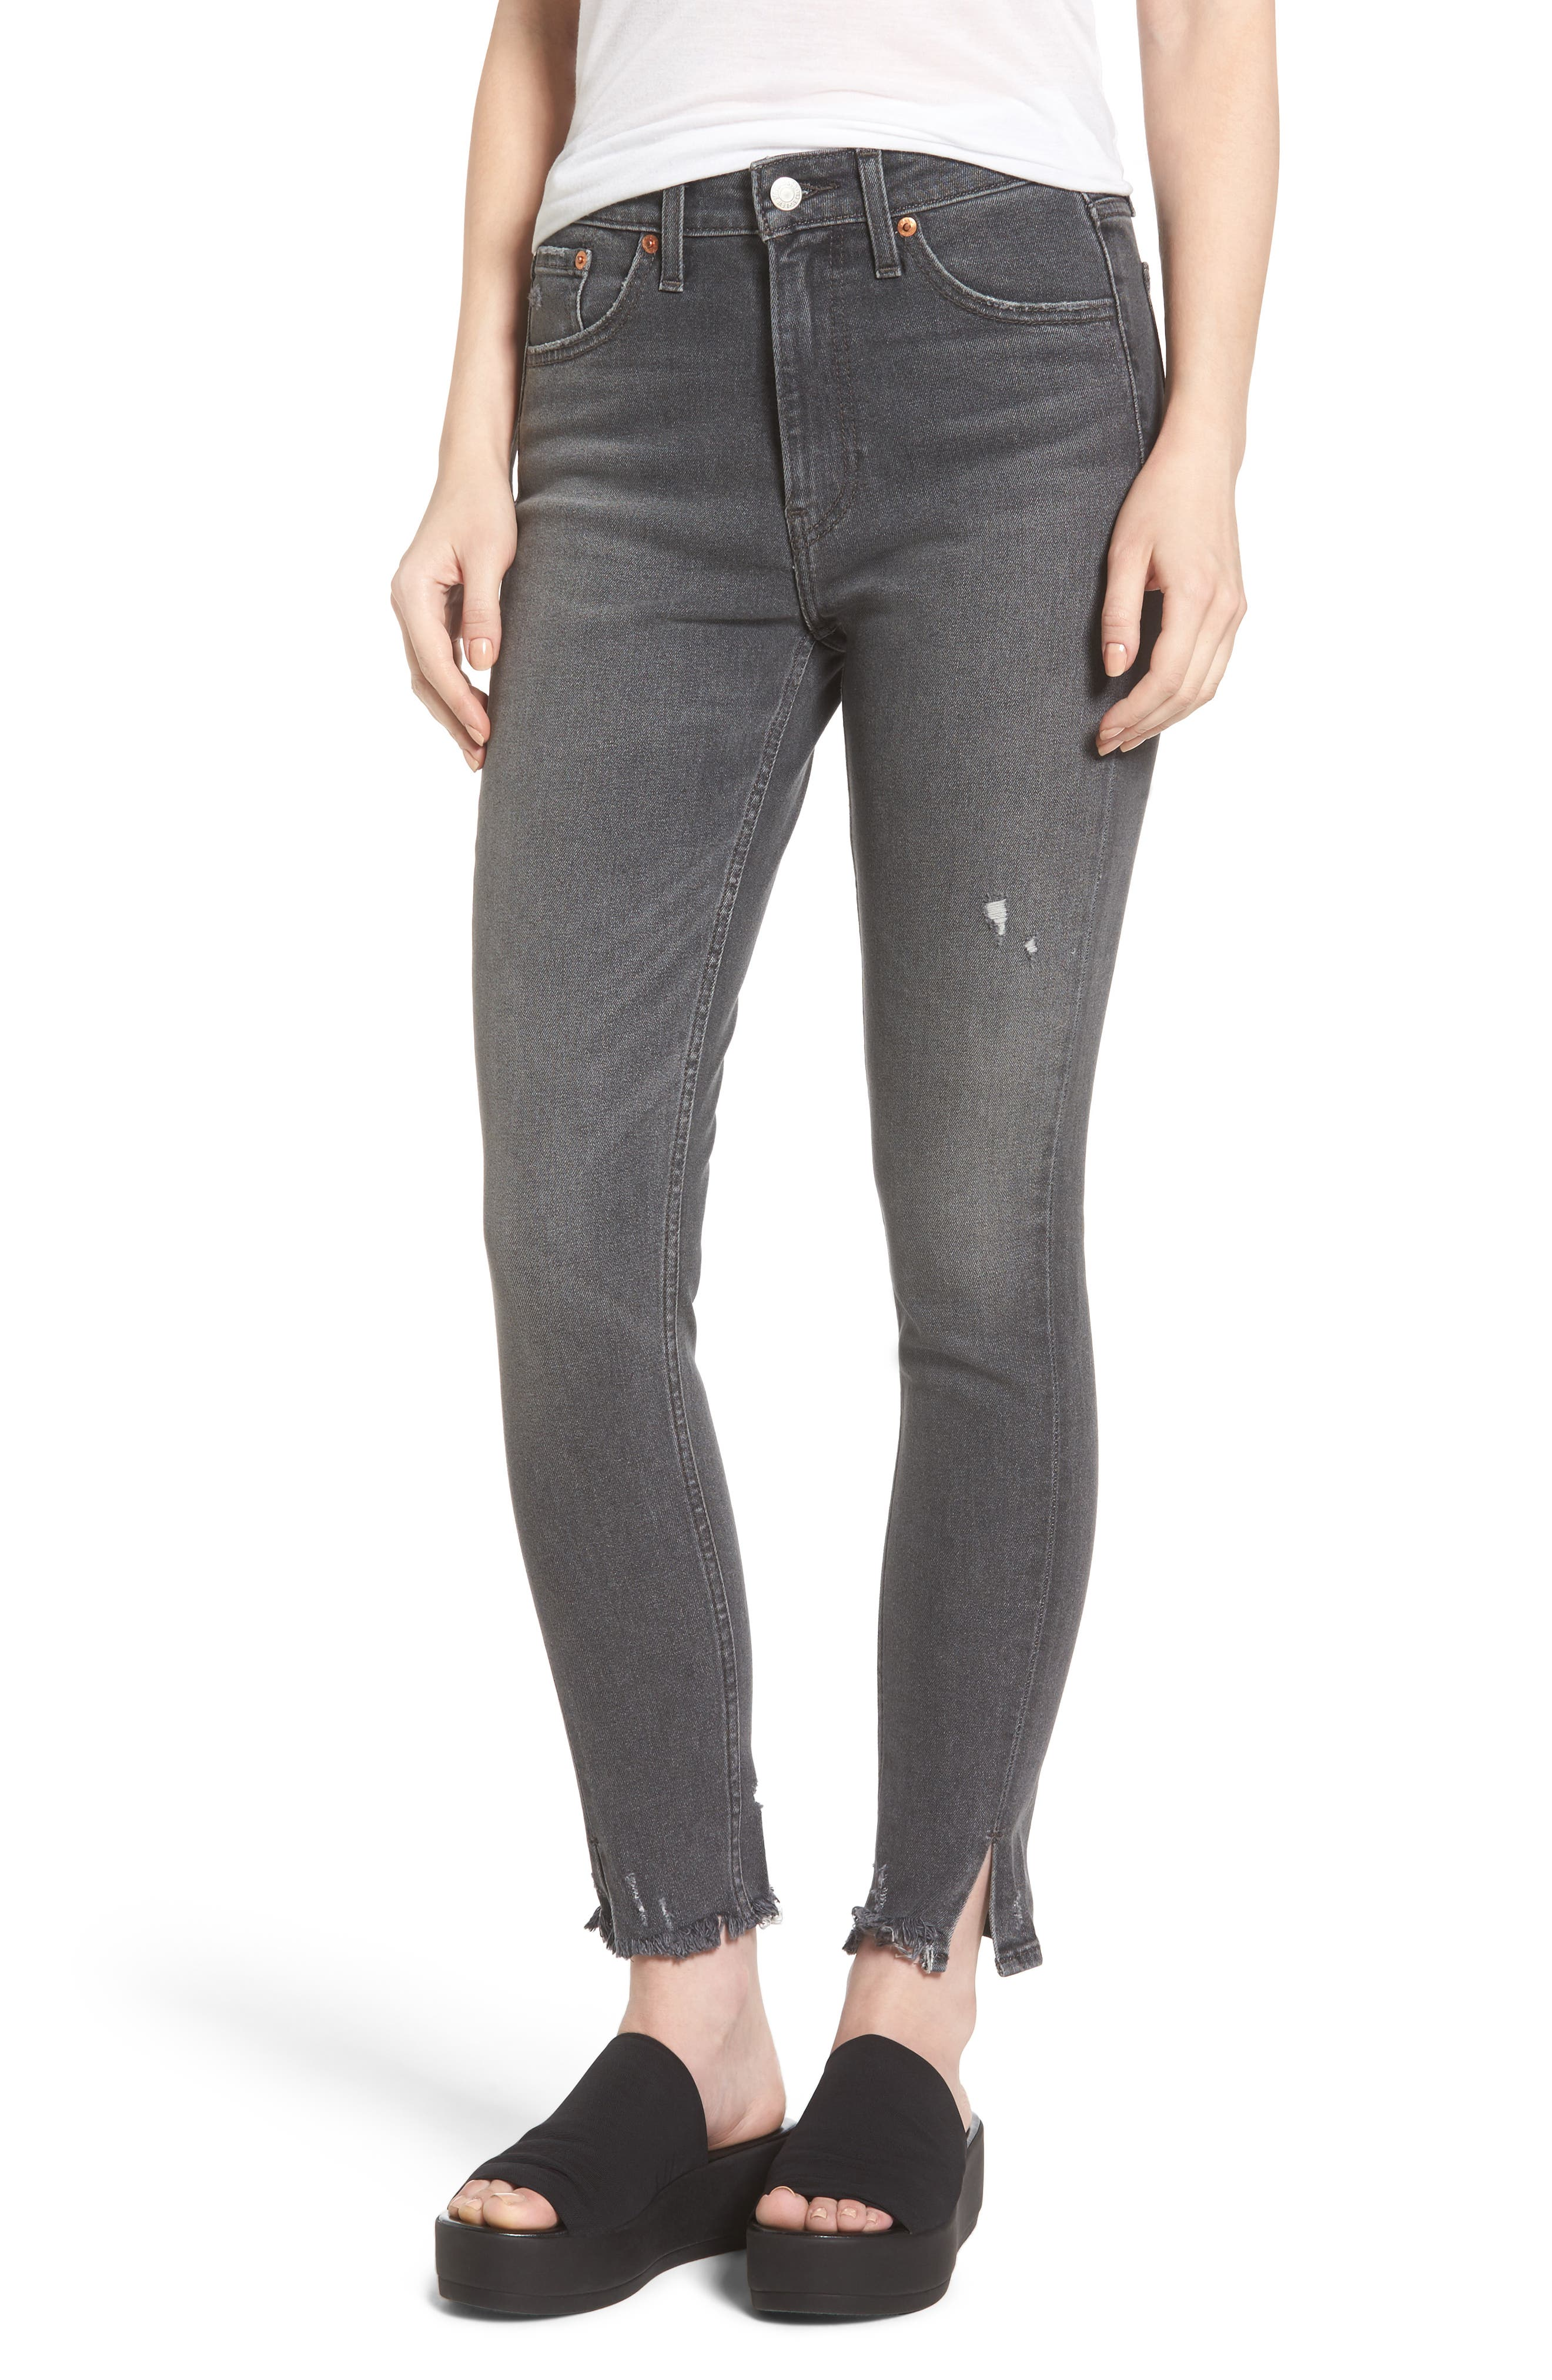 721 Altered High Waist Skinny Jeans,                         Main,                         color, Up In Smoke